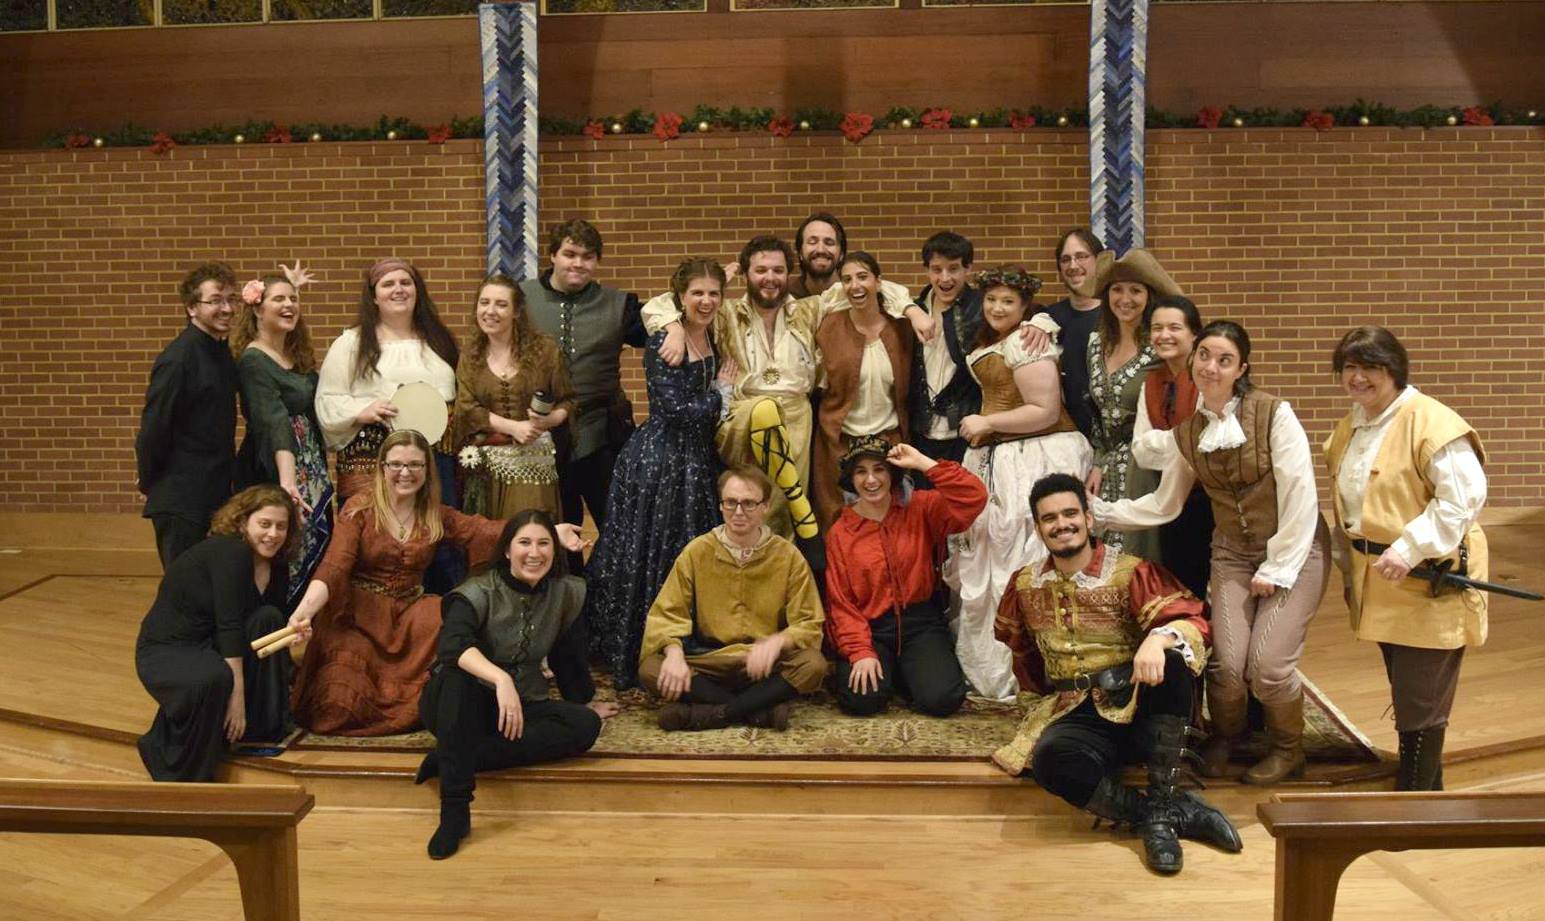 The Britches and Hose Production of Twelfth Night in 2017. I was a wandering singing musician person - we called ourselves the Festettes!